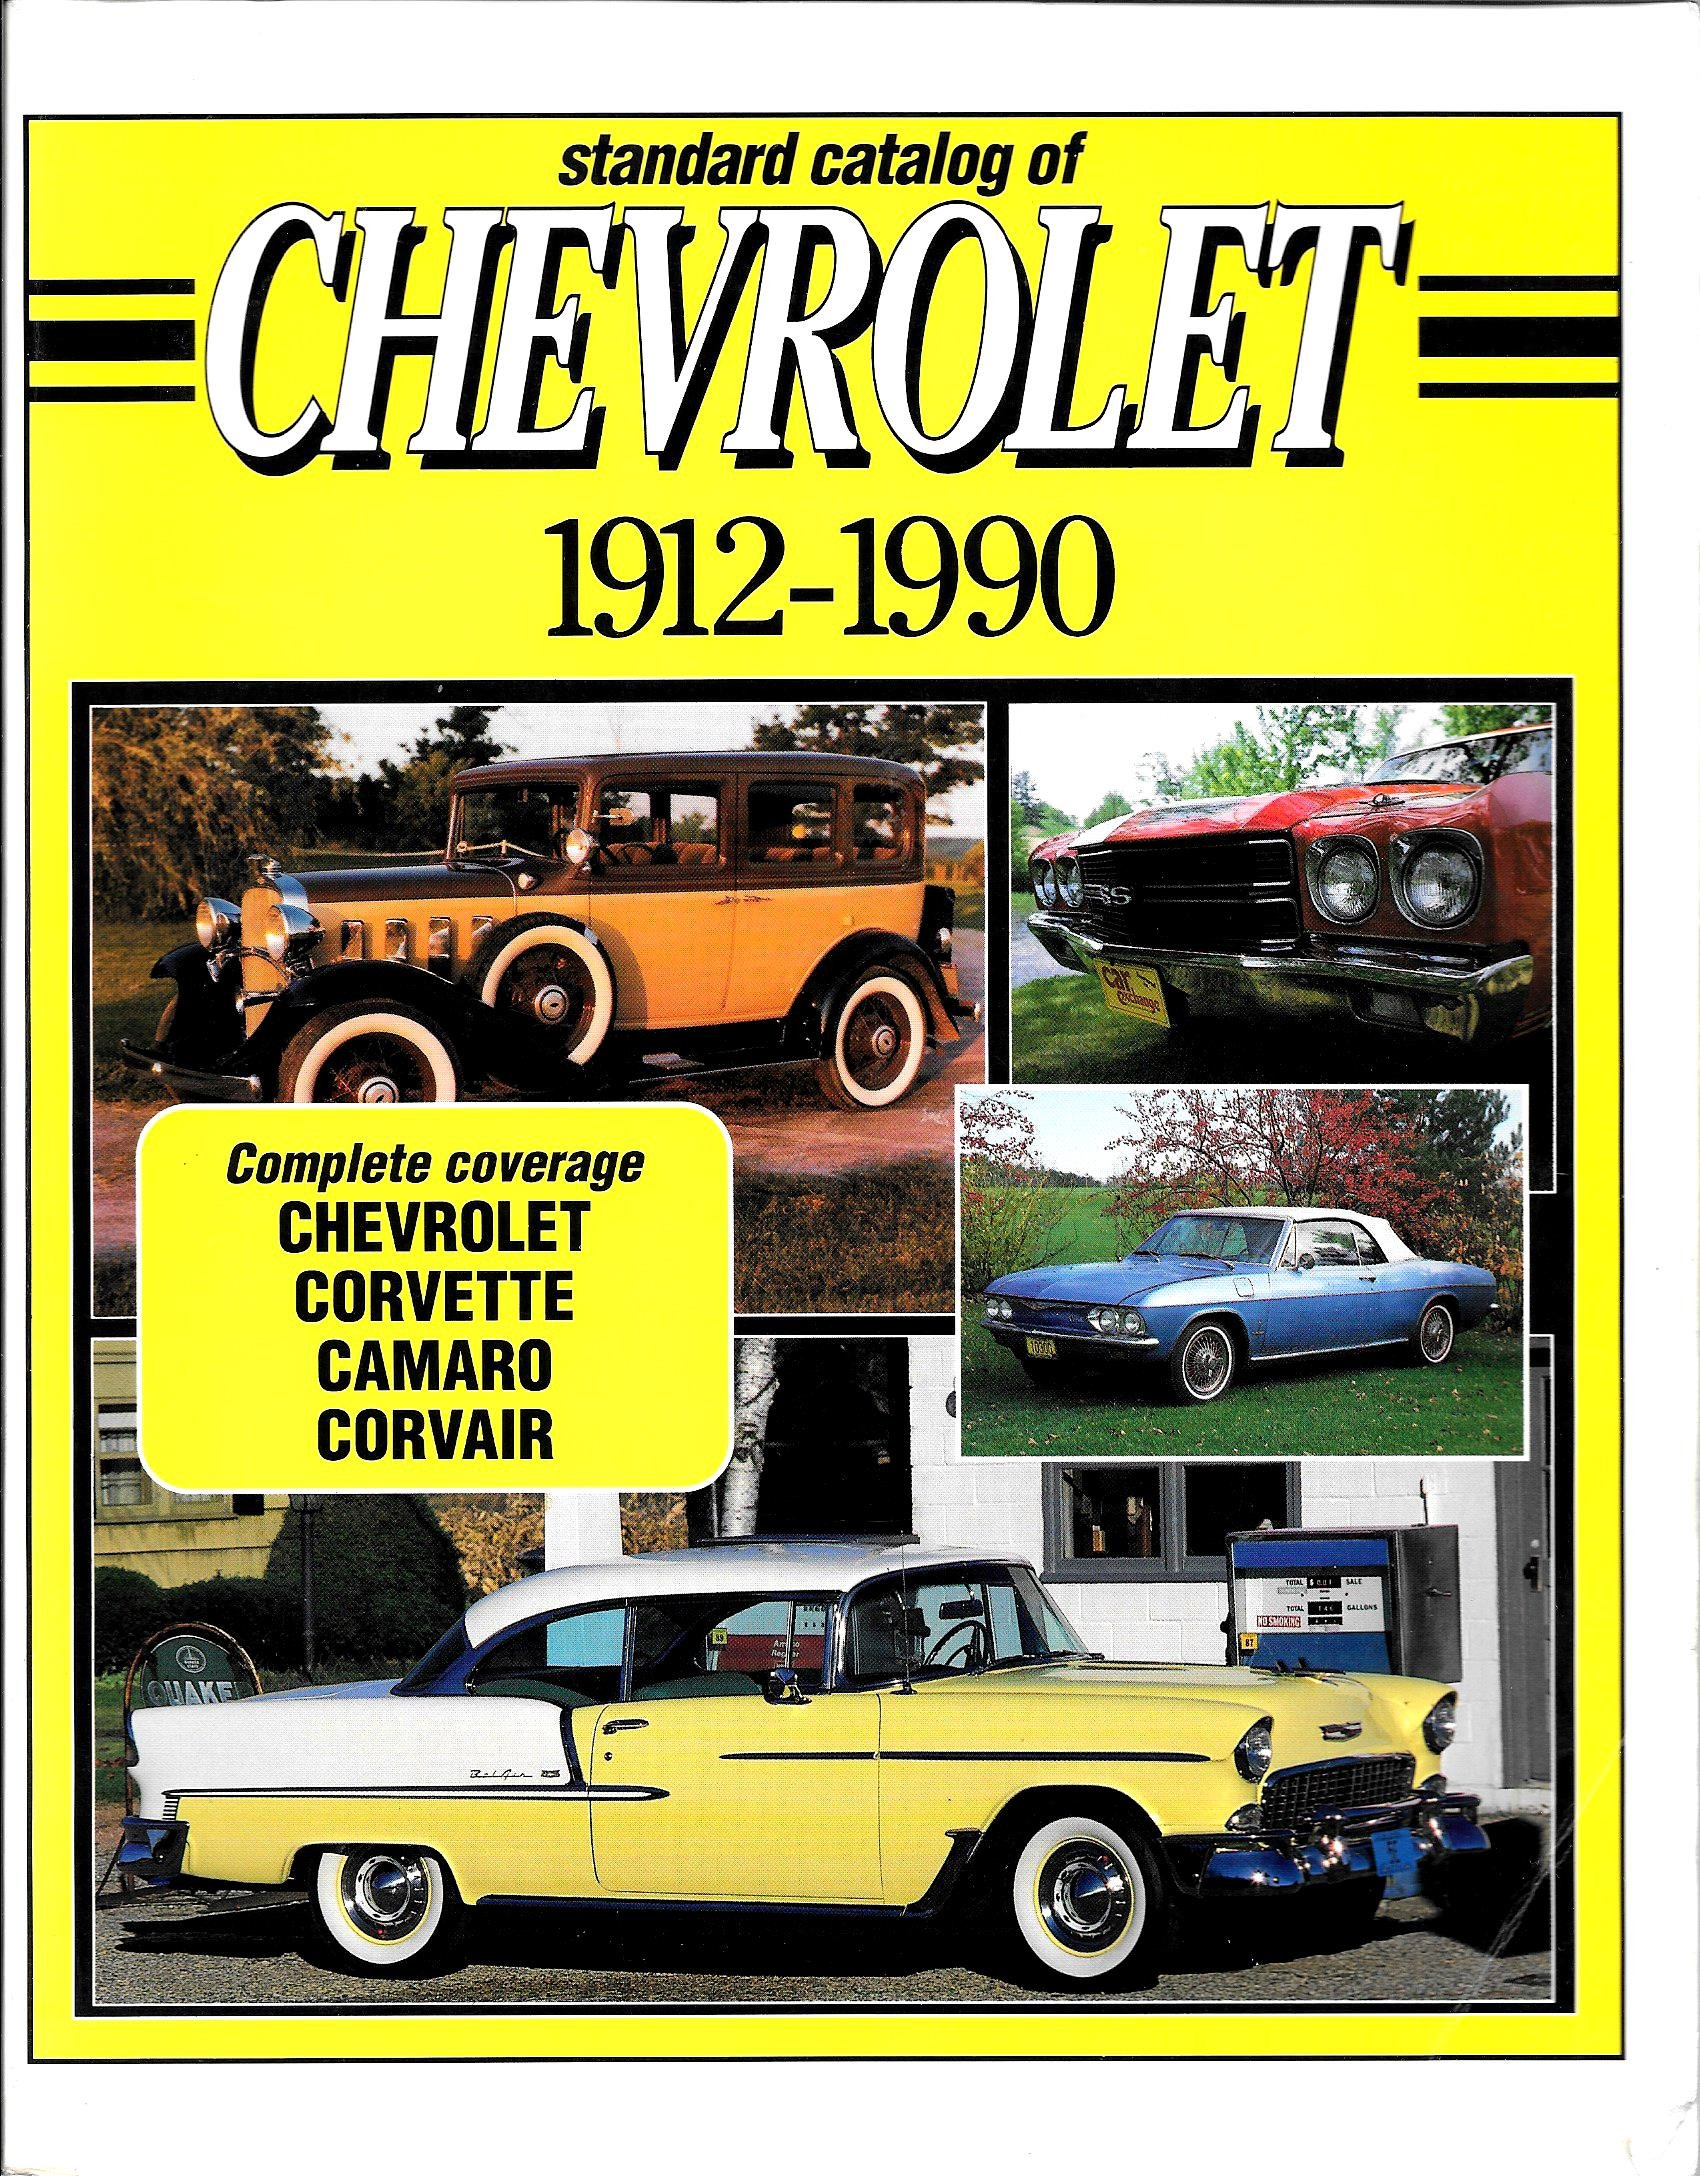 Standard Catalog of Chevrolet, 1912-1990 (STANDARD CATALOG OF AMERICAN CARS):  Pat Chappell: 9780873411417: Amazon.com: Books